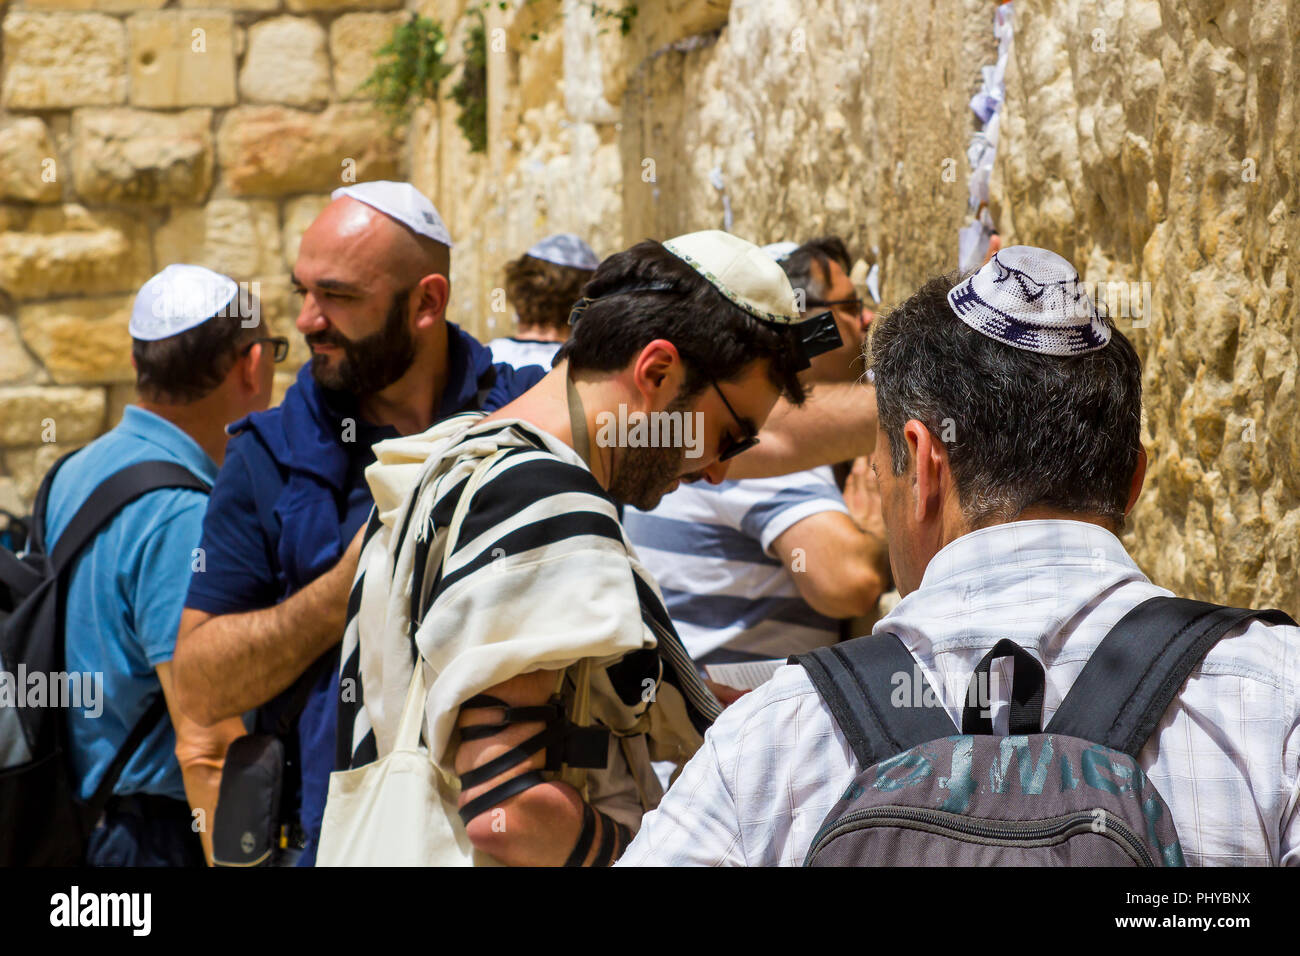 10 May 2018 Jewish pilgrims praying before the Western Wall in jerusalem Israel - Stock Image